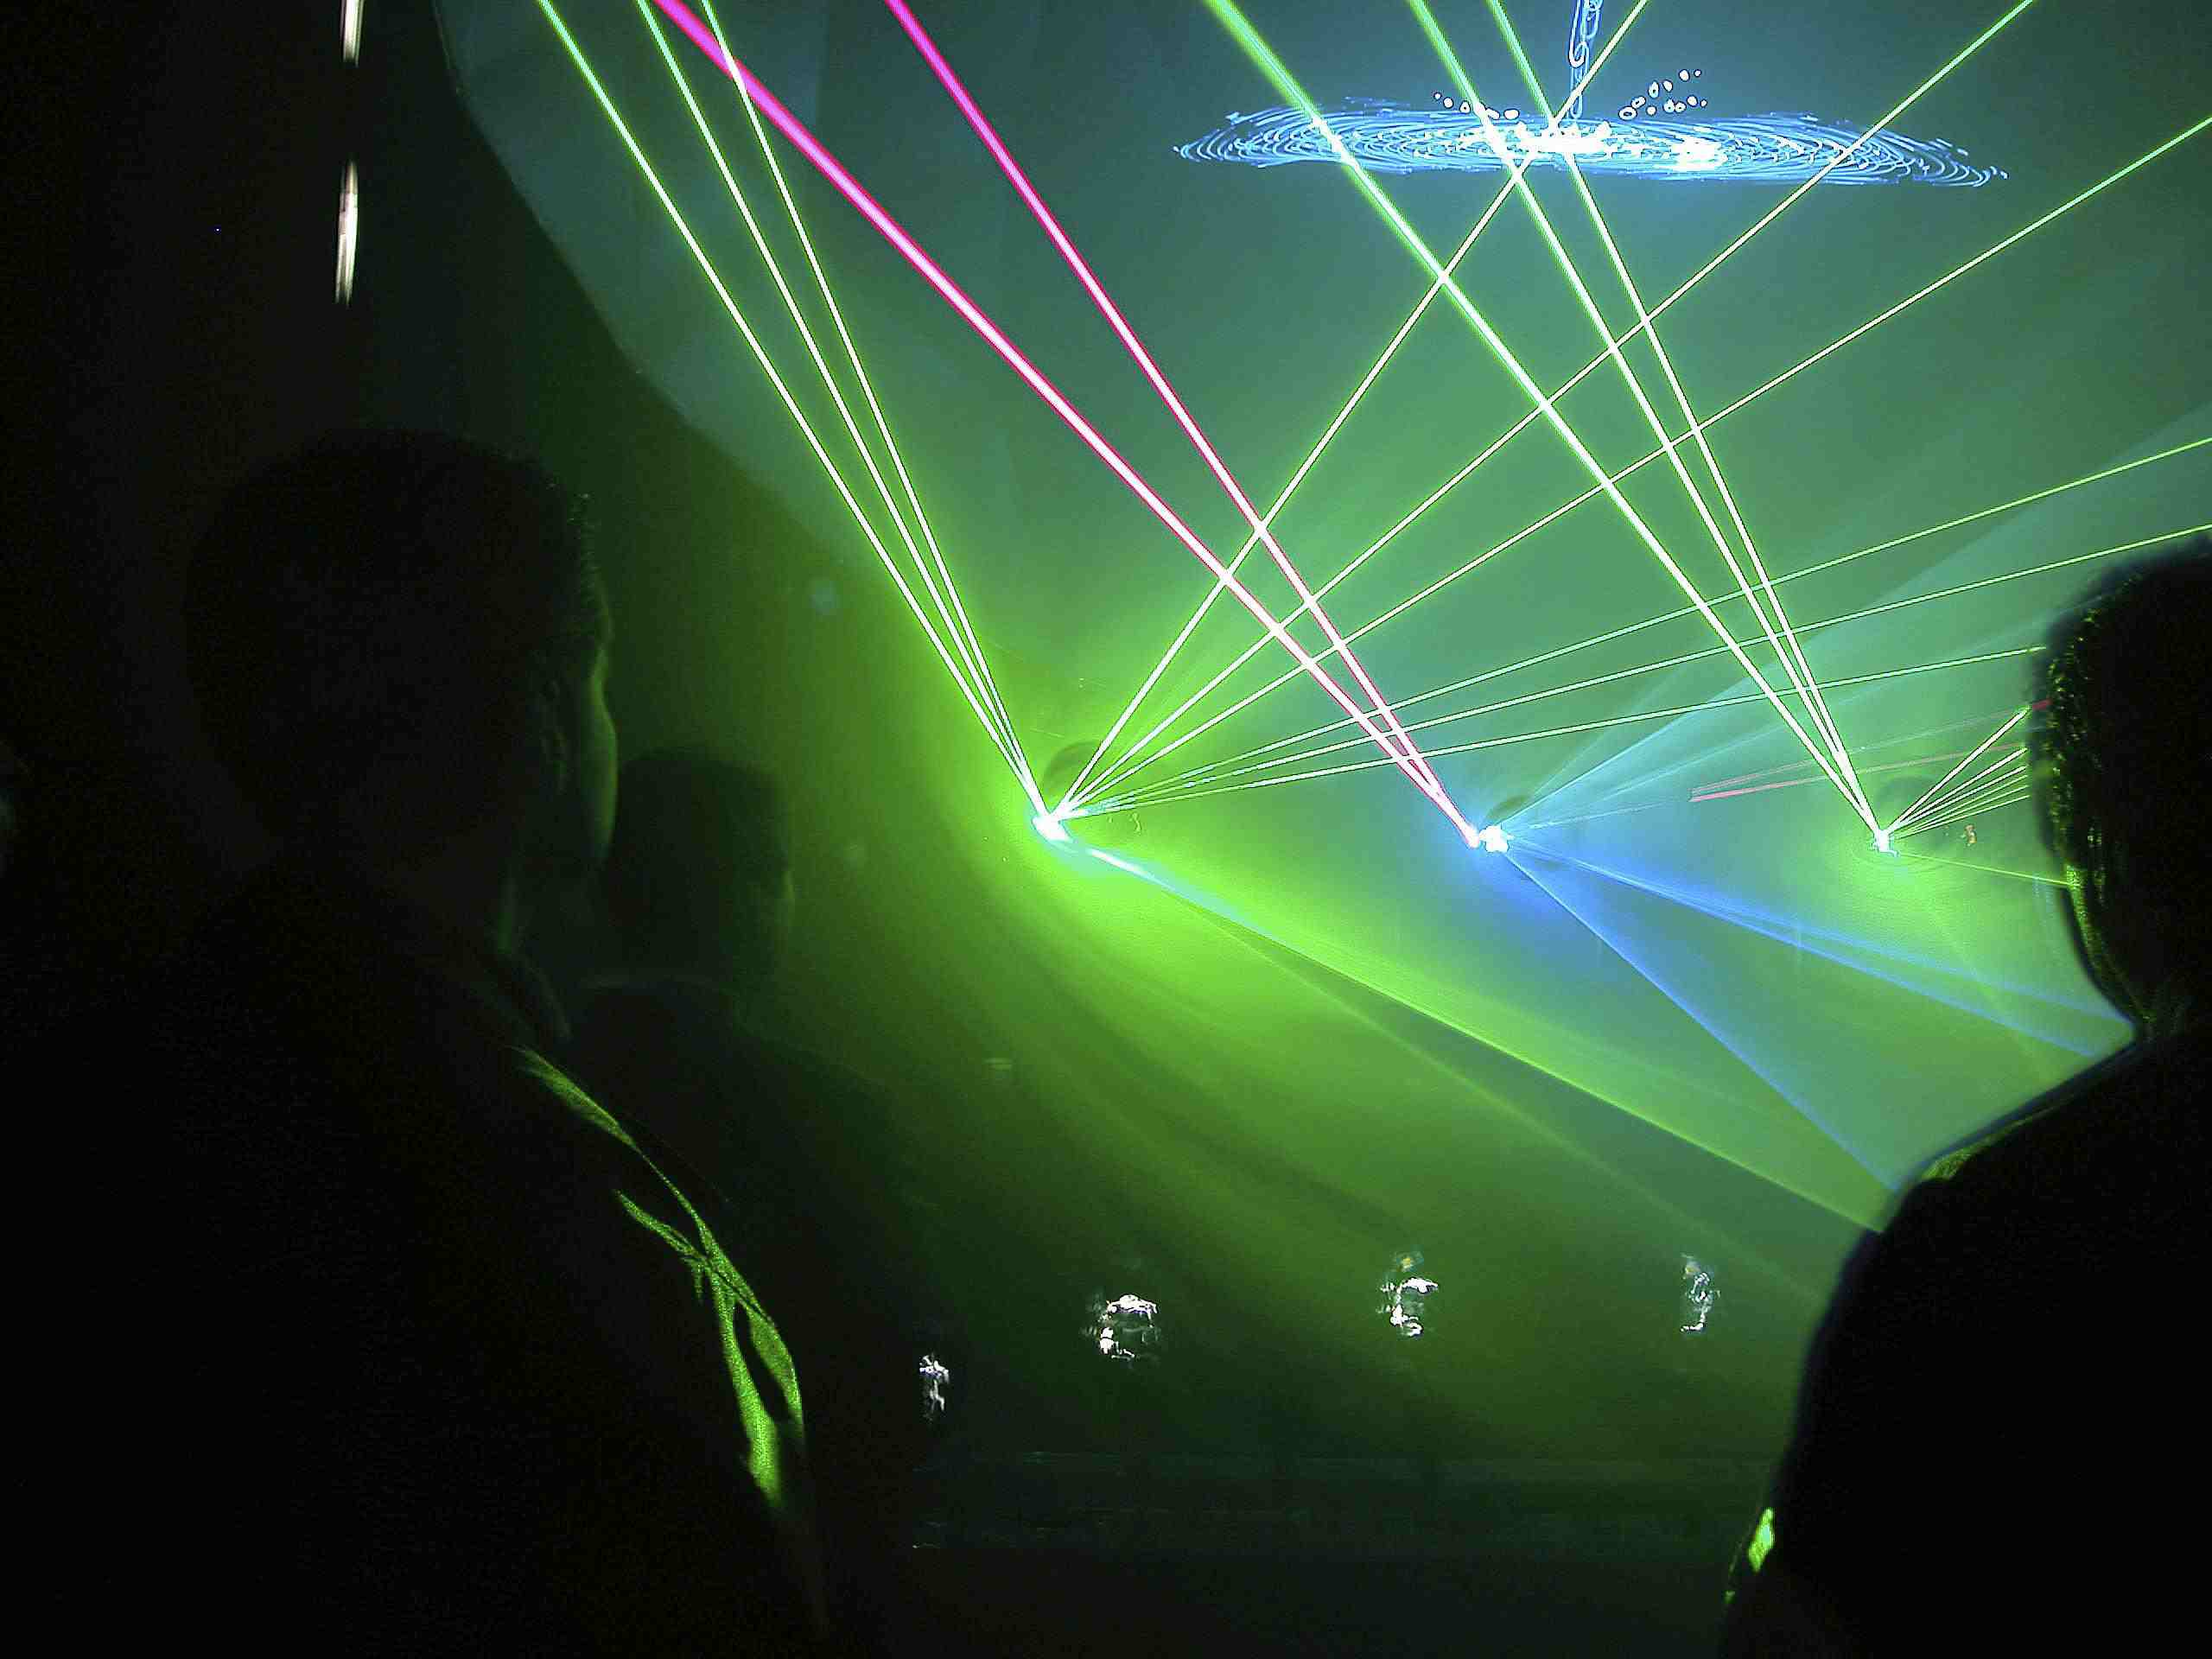 Fog and lasers turn any glow party into an epic glow party.